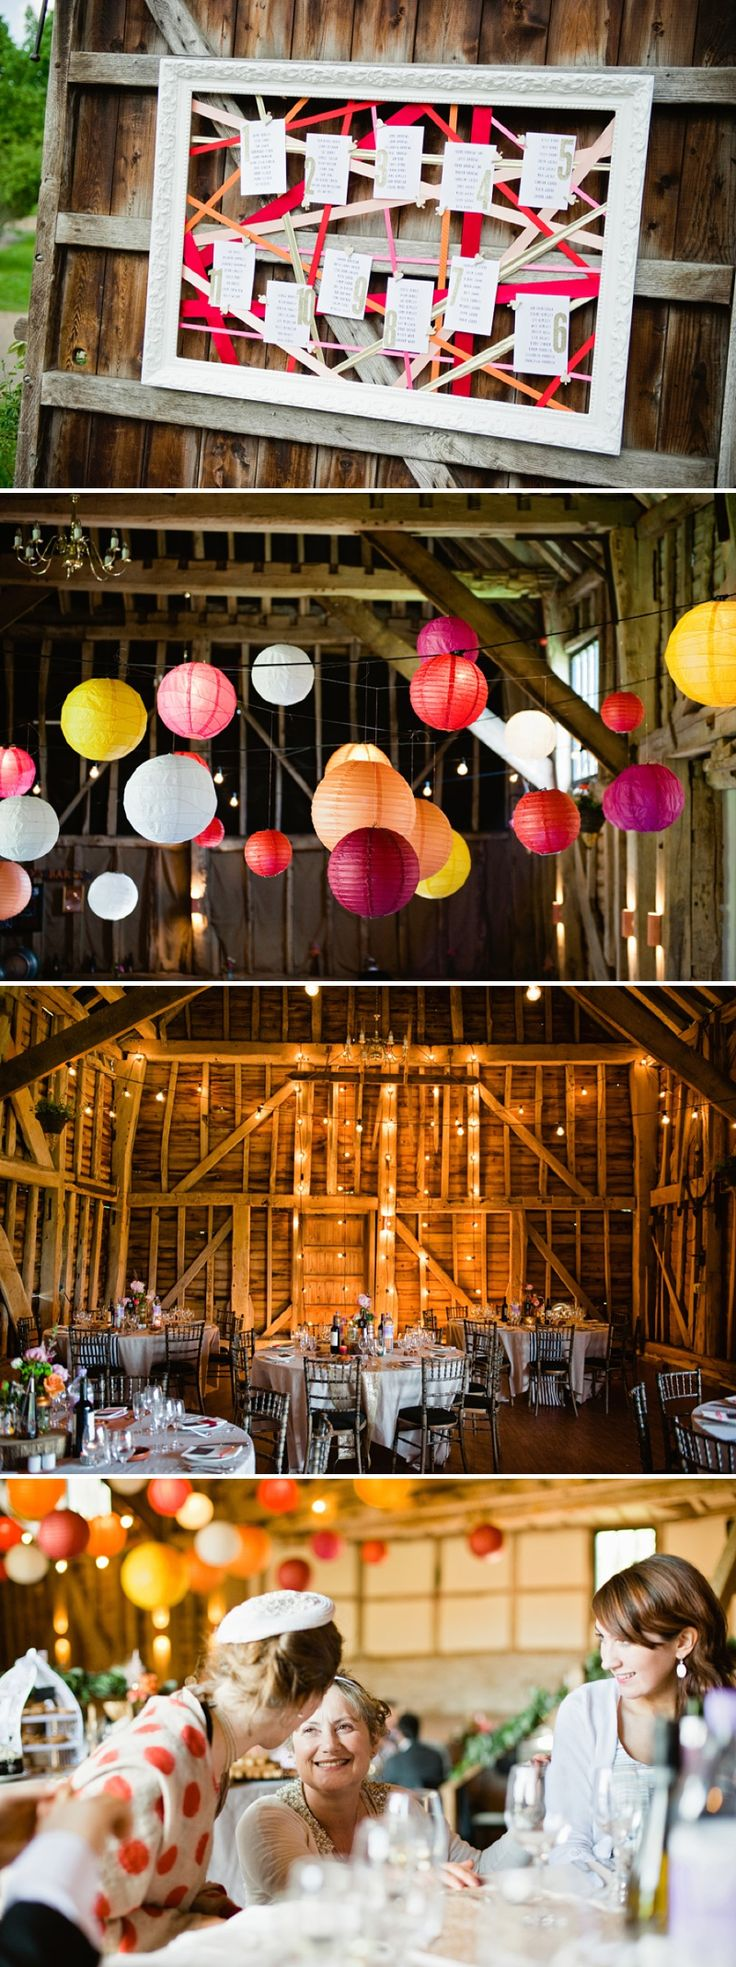 Rustic Paper Lantern Festoon Lighting Barn Wedding DIY Tableplan